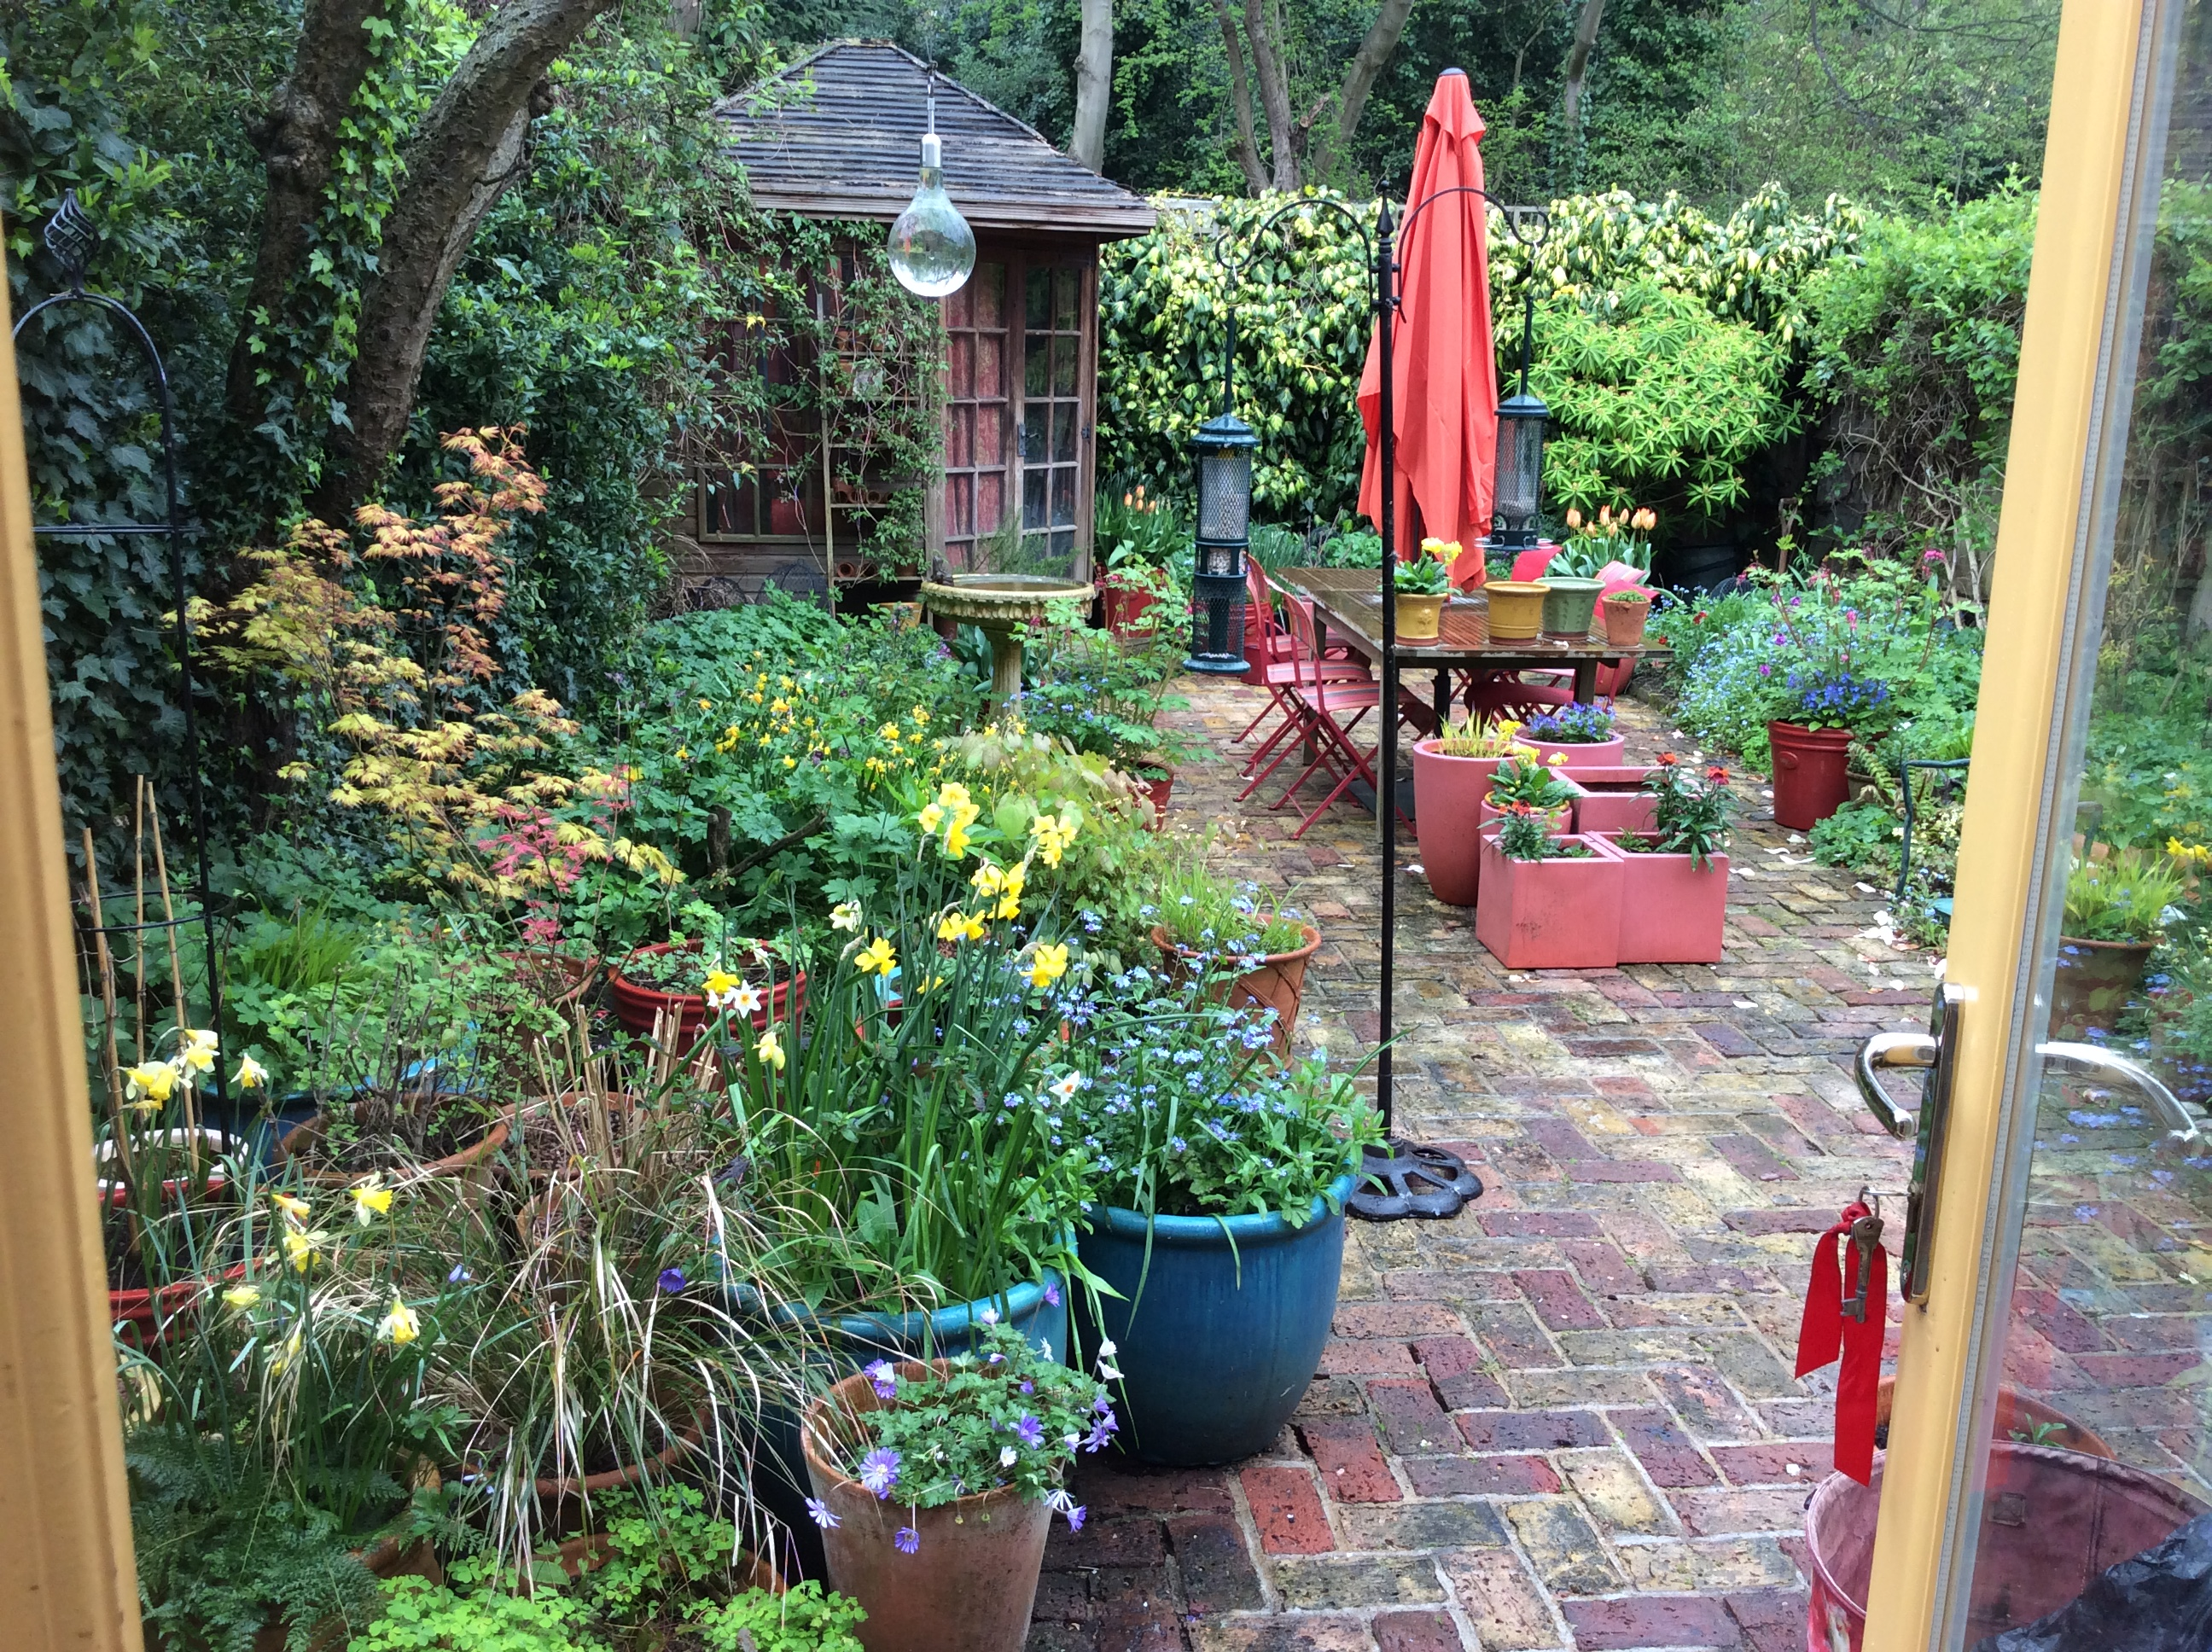 backyard London cottage garden